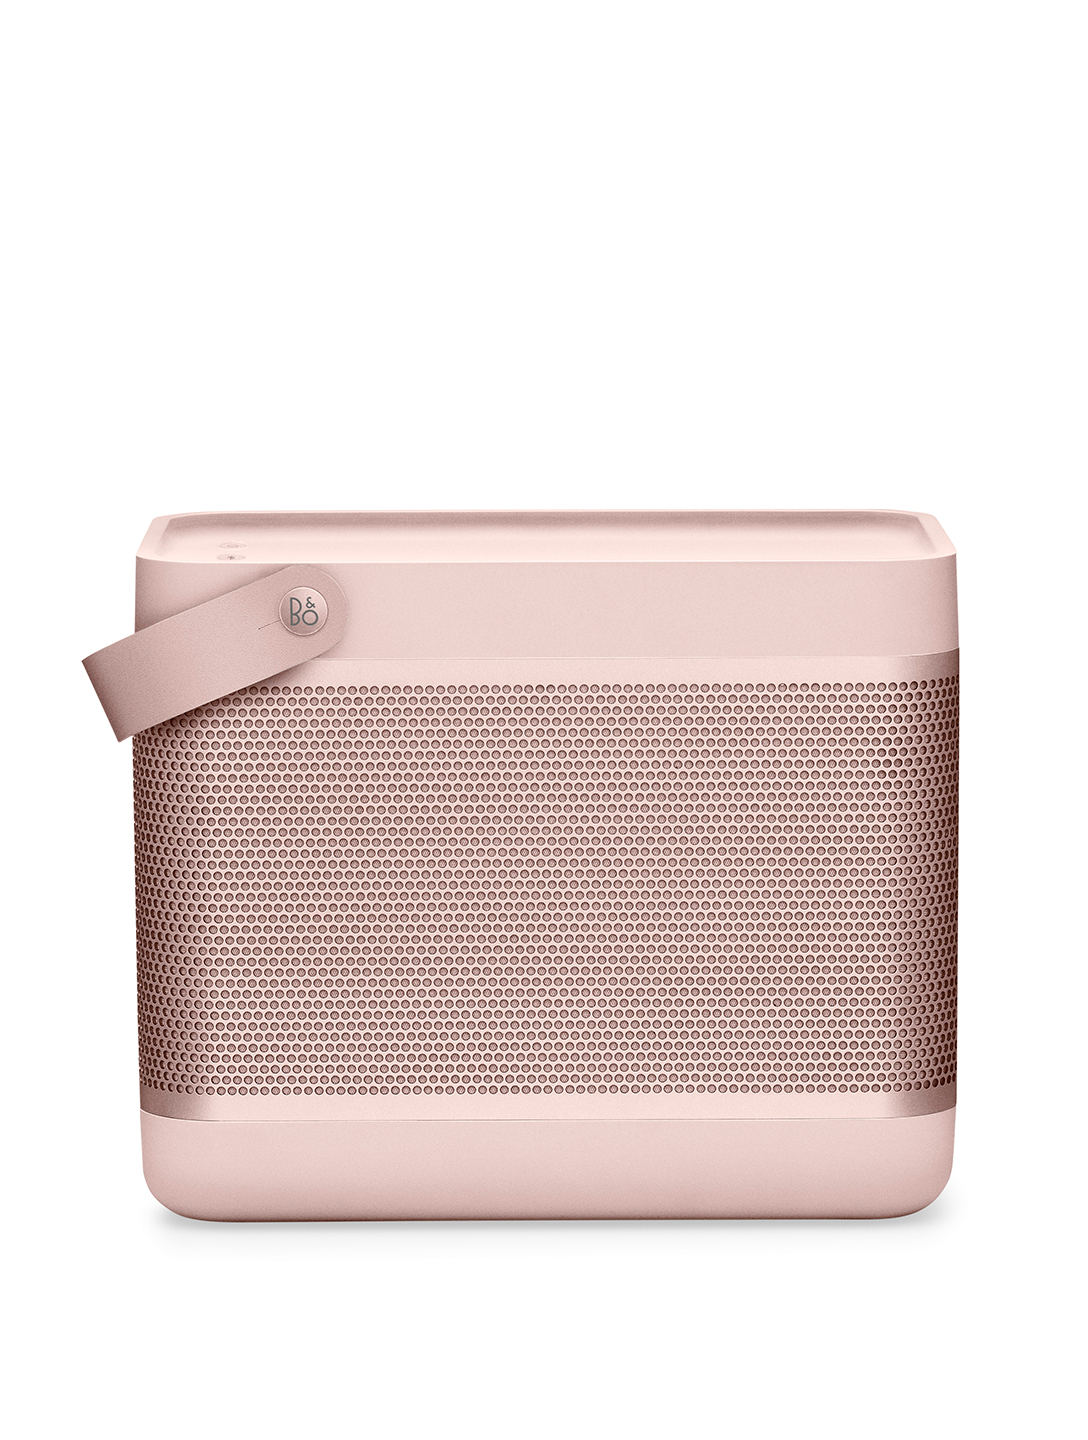 BANG & OLUFSEN Beolit 17 Bluetooth Speakers Gifts Pink